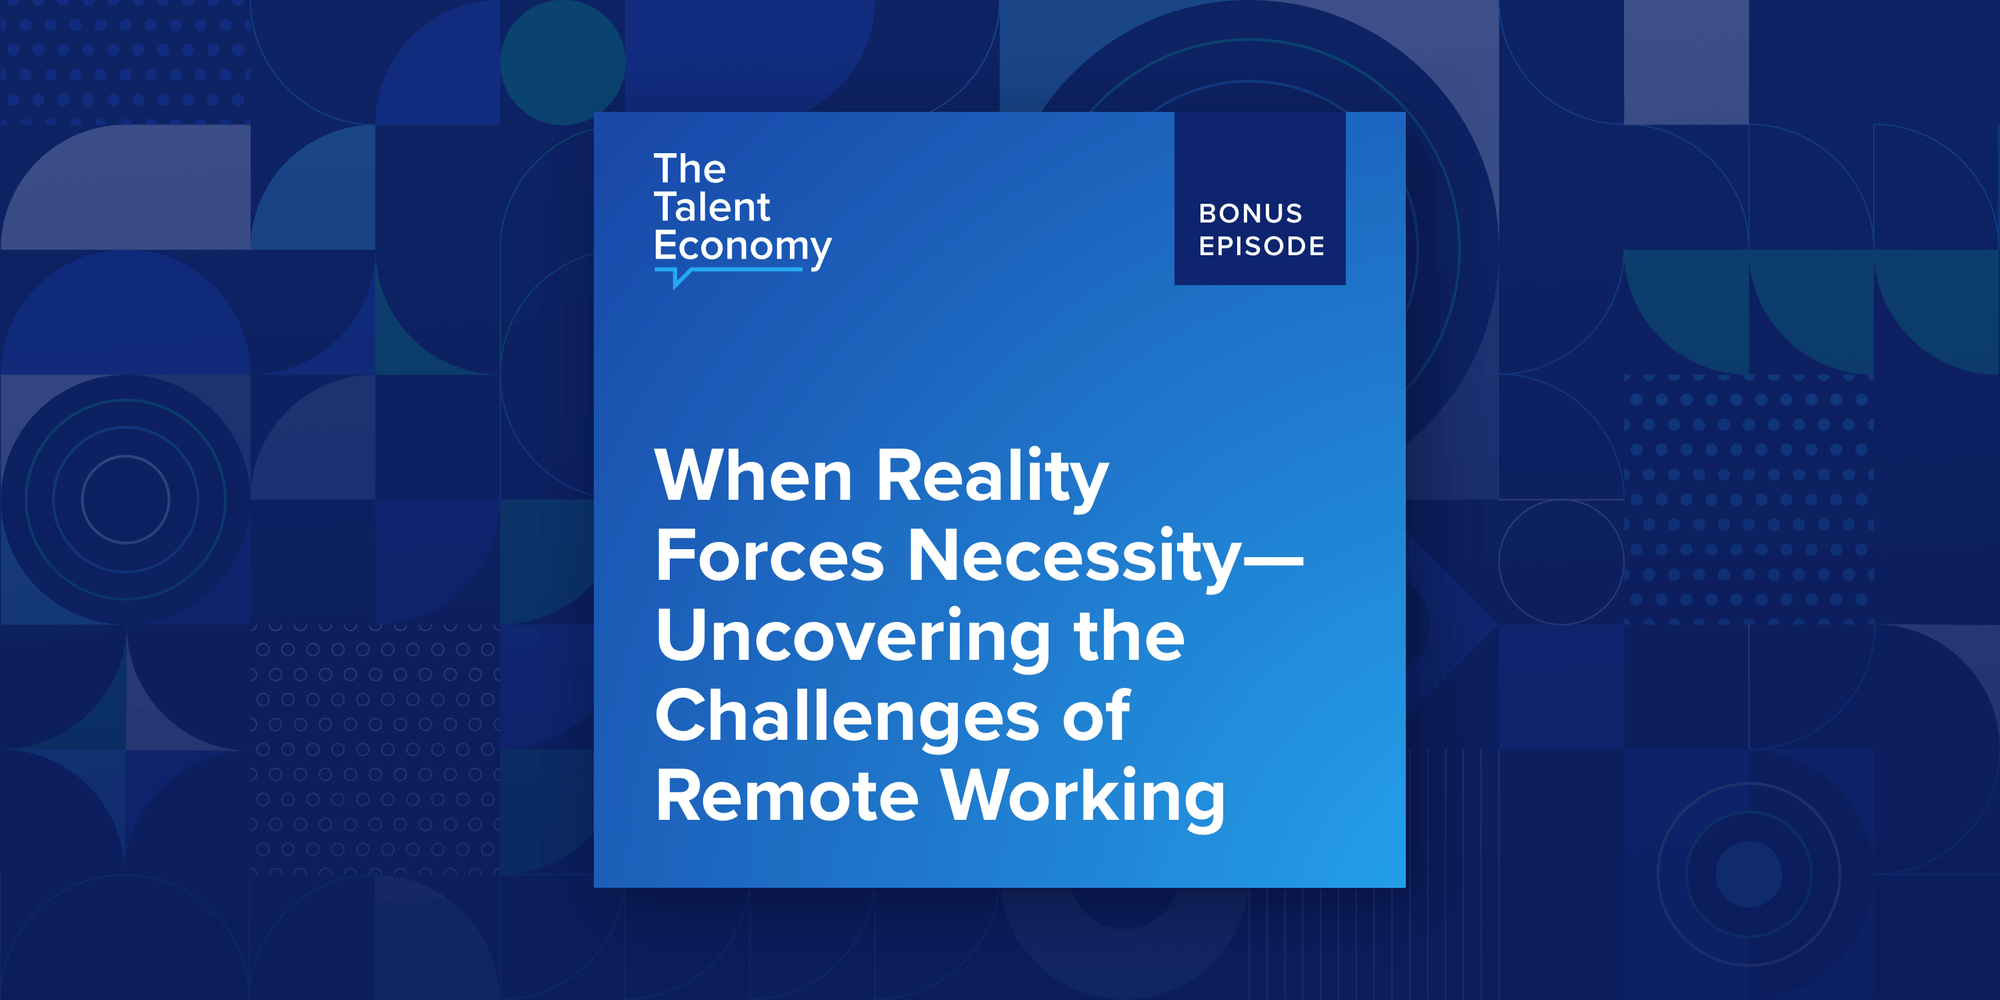 When Reality Forces Necessity – Uncovering the Challenges of Remote Working